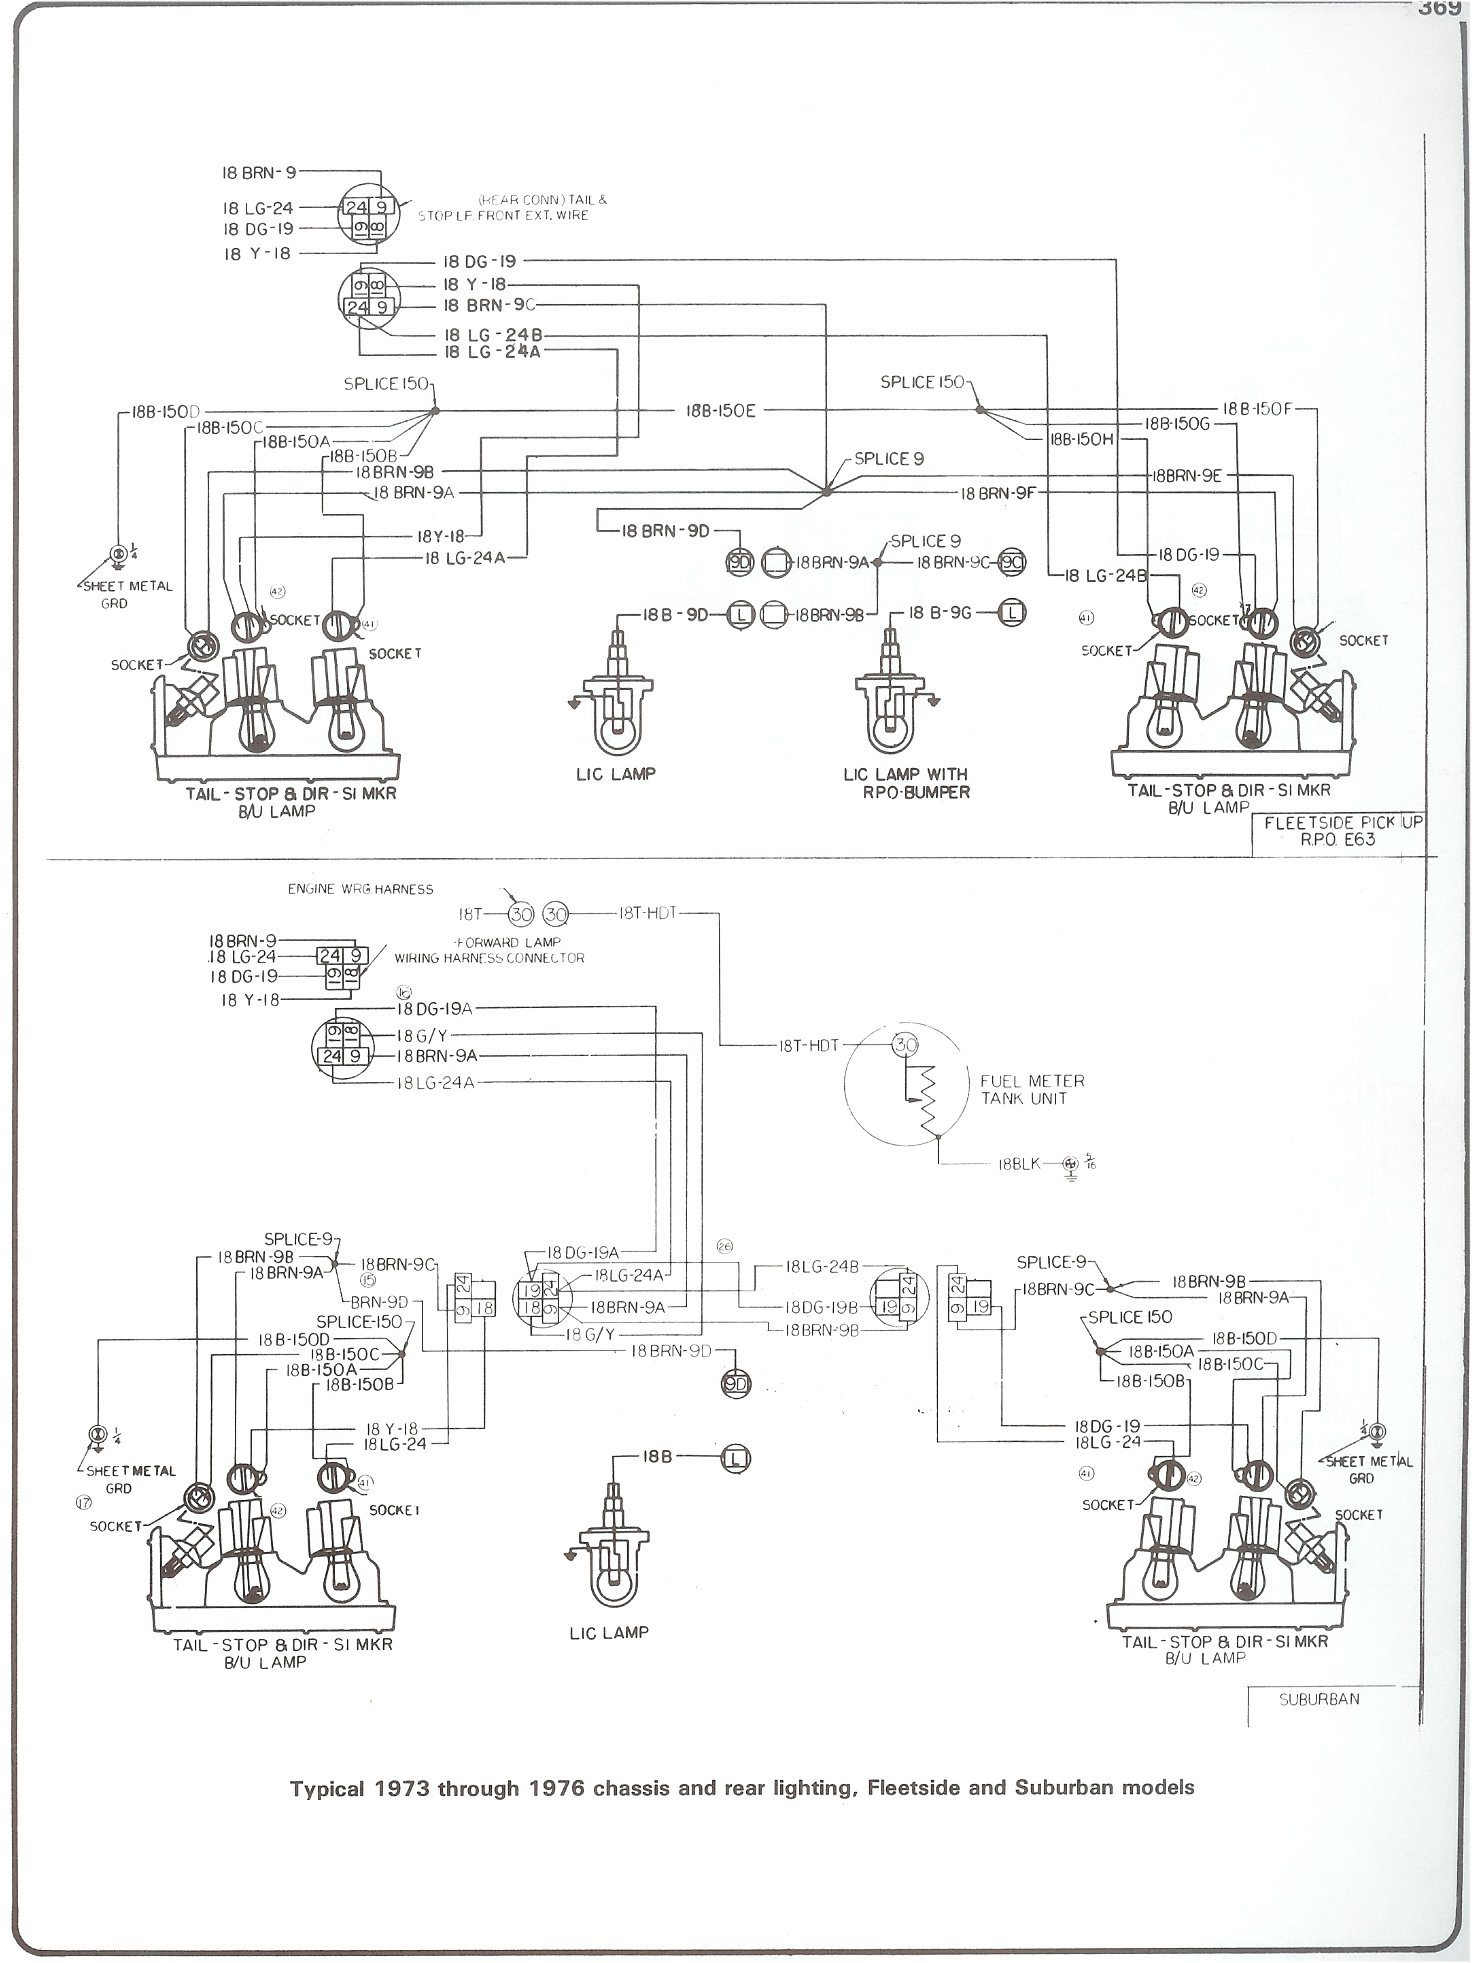 1987 chevy wiring harness diagram data schema73 87 c10 wiring harness online wiring diagram 1987 chevy truck wiring harness diagram 1987 chevy wiring harness